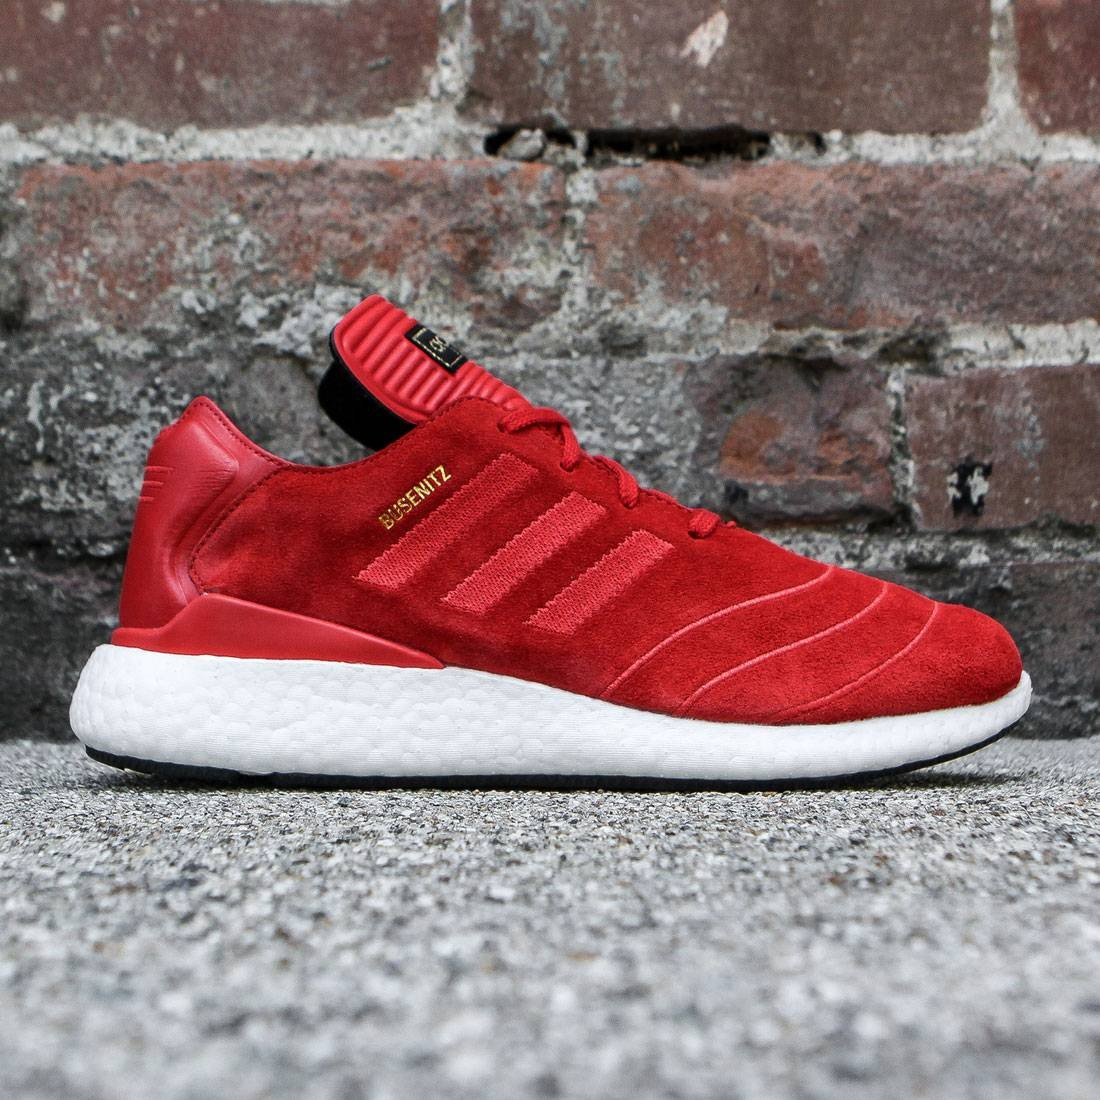 a6a6f8fd962 Adidas Men Busenitz Pure Boost red scarlet white